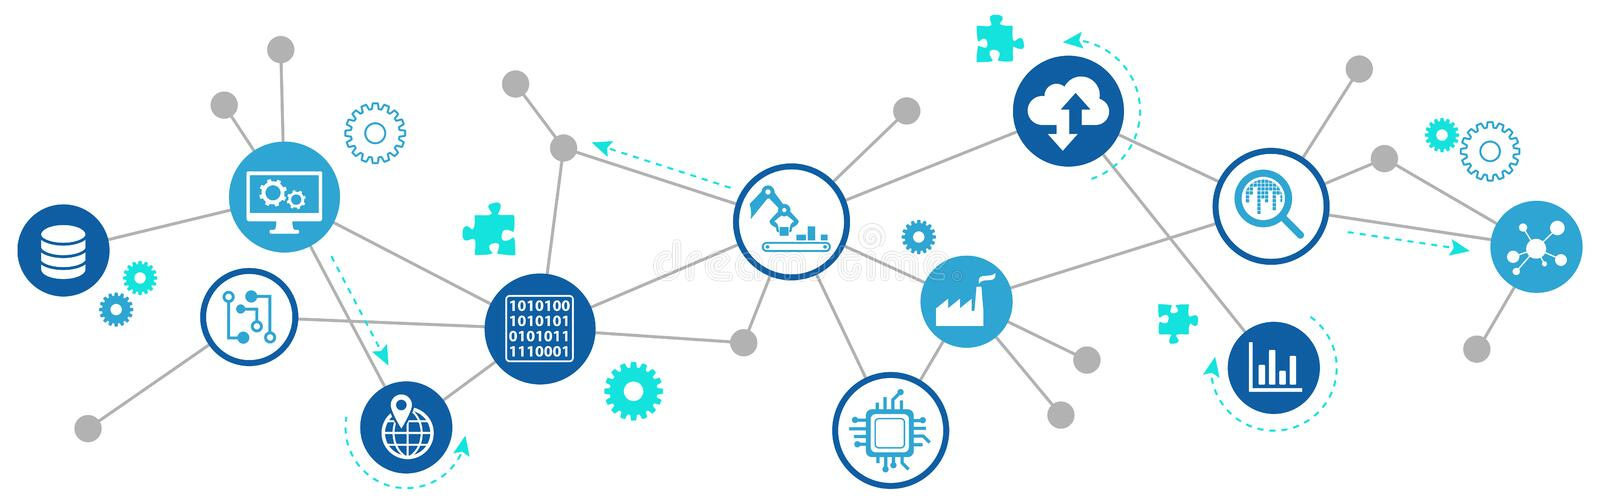 Digitalization concept: Enterprise internet of things / smart factory illustration royalty free illustration